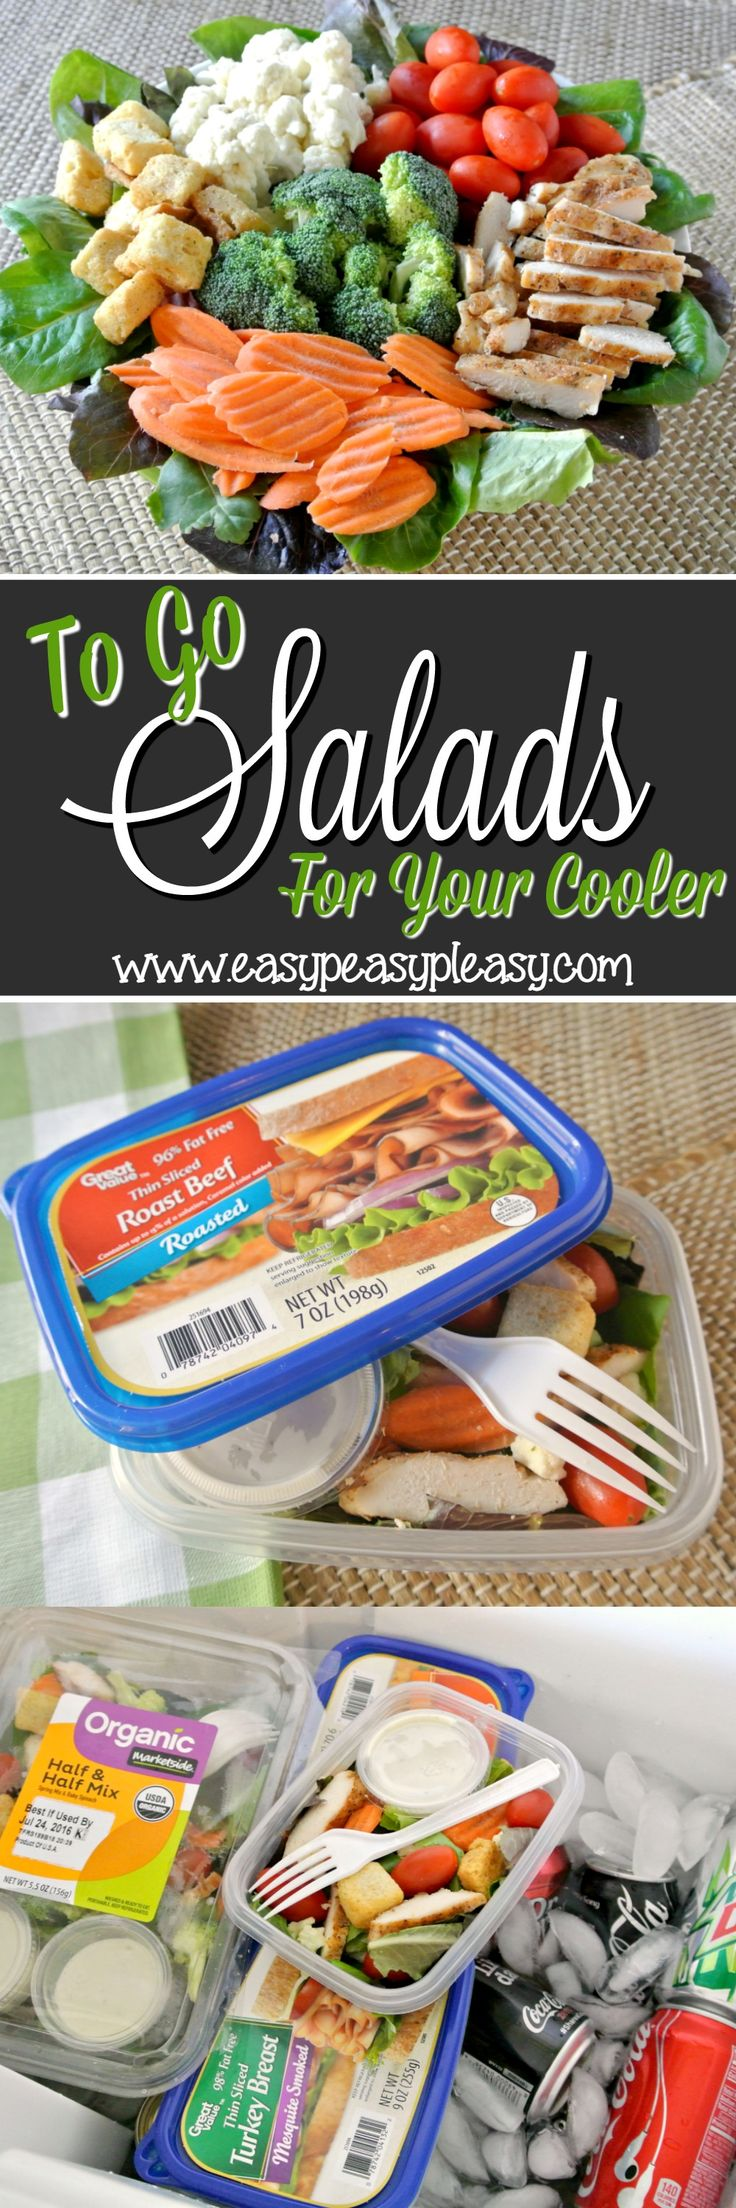 From salad to container to cooler to trash. Easy To Go Salads with no cleanup are the perfect addition to your cooler when hitting the lake, ballpark, beach and tailgating.